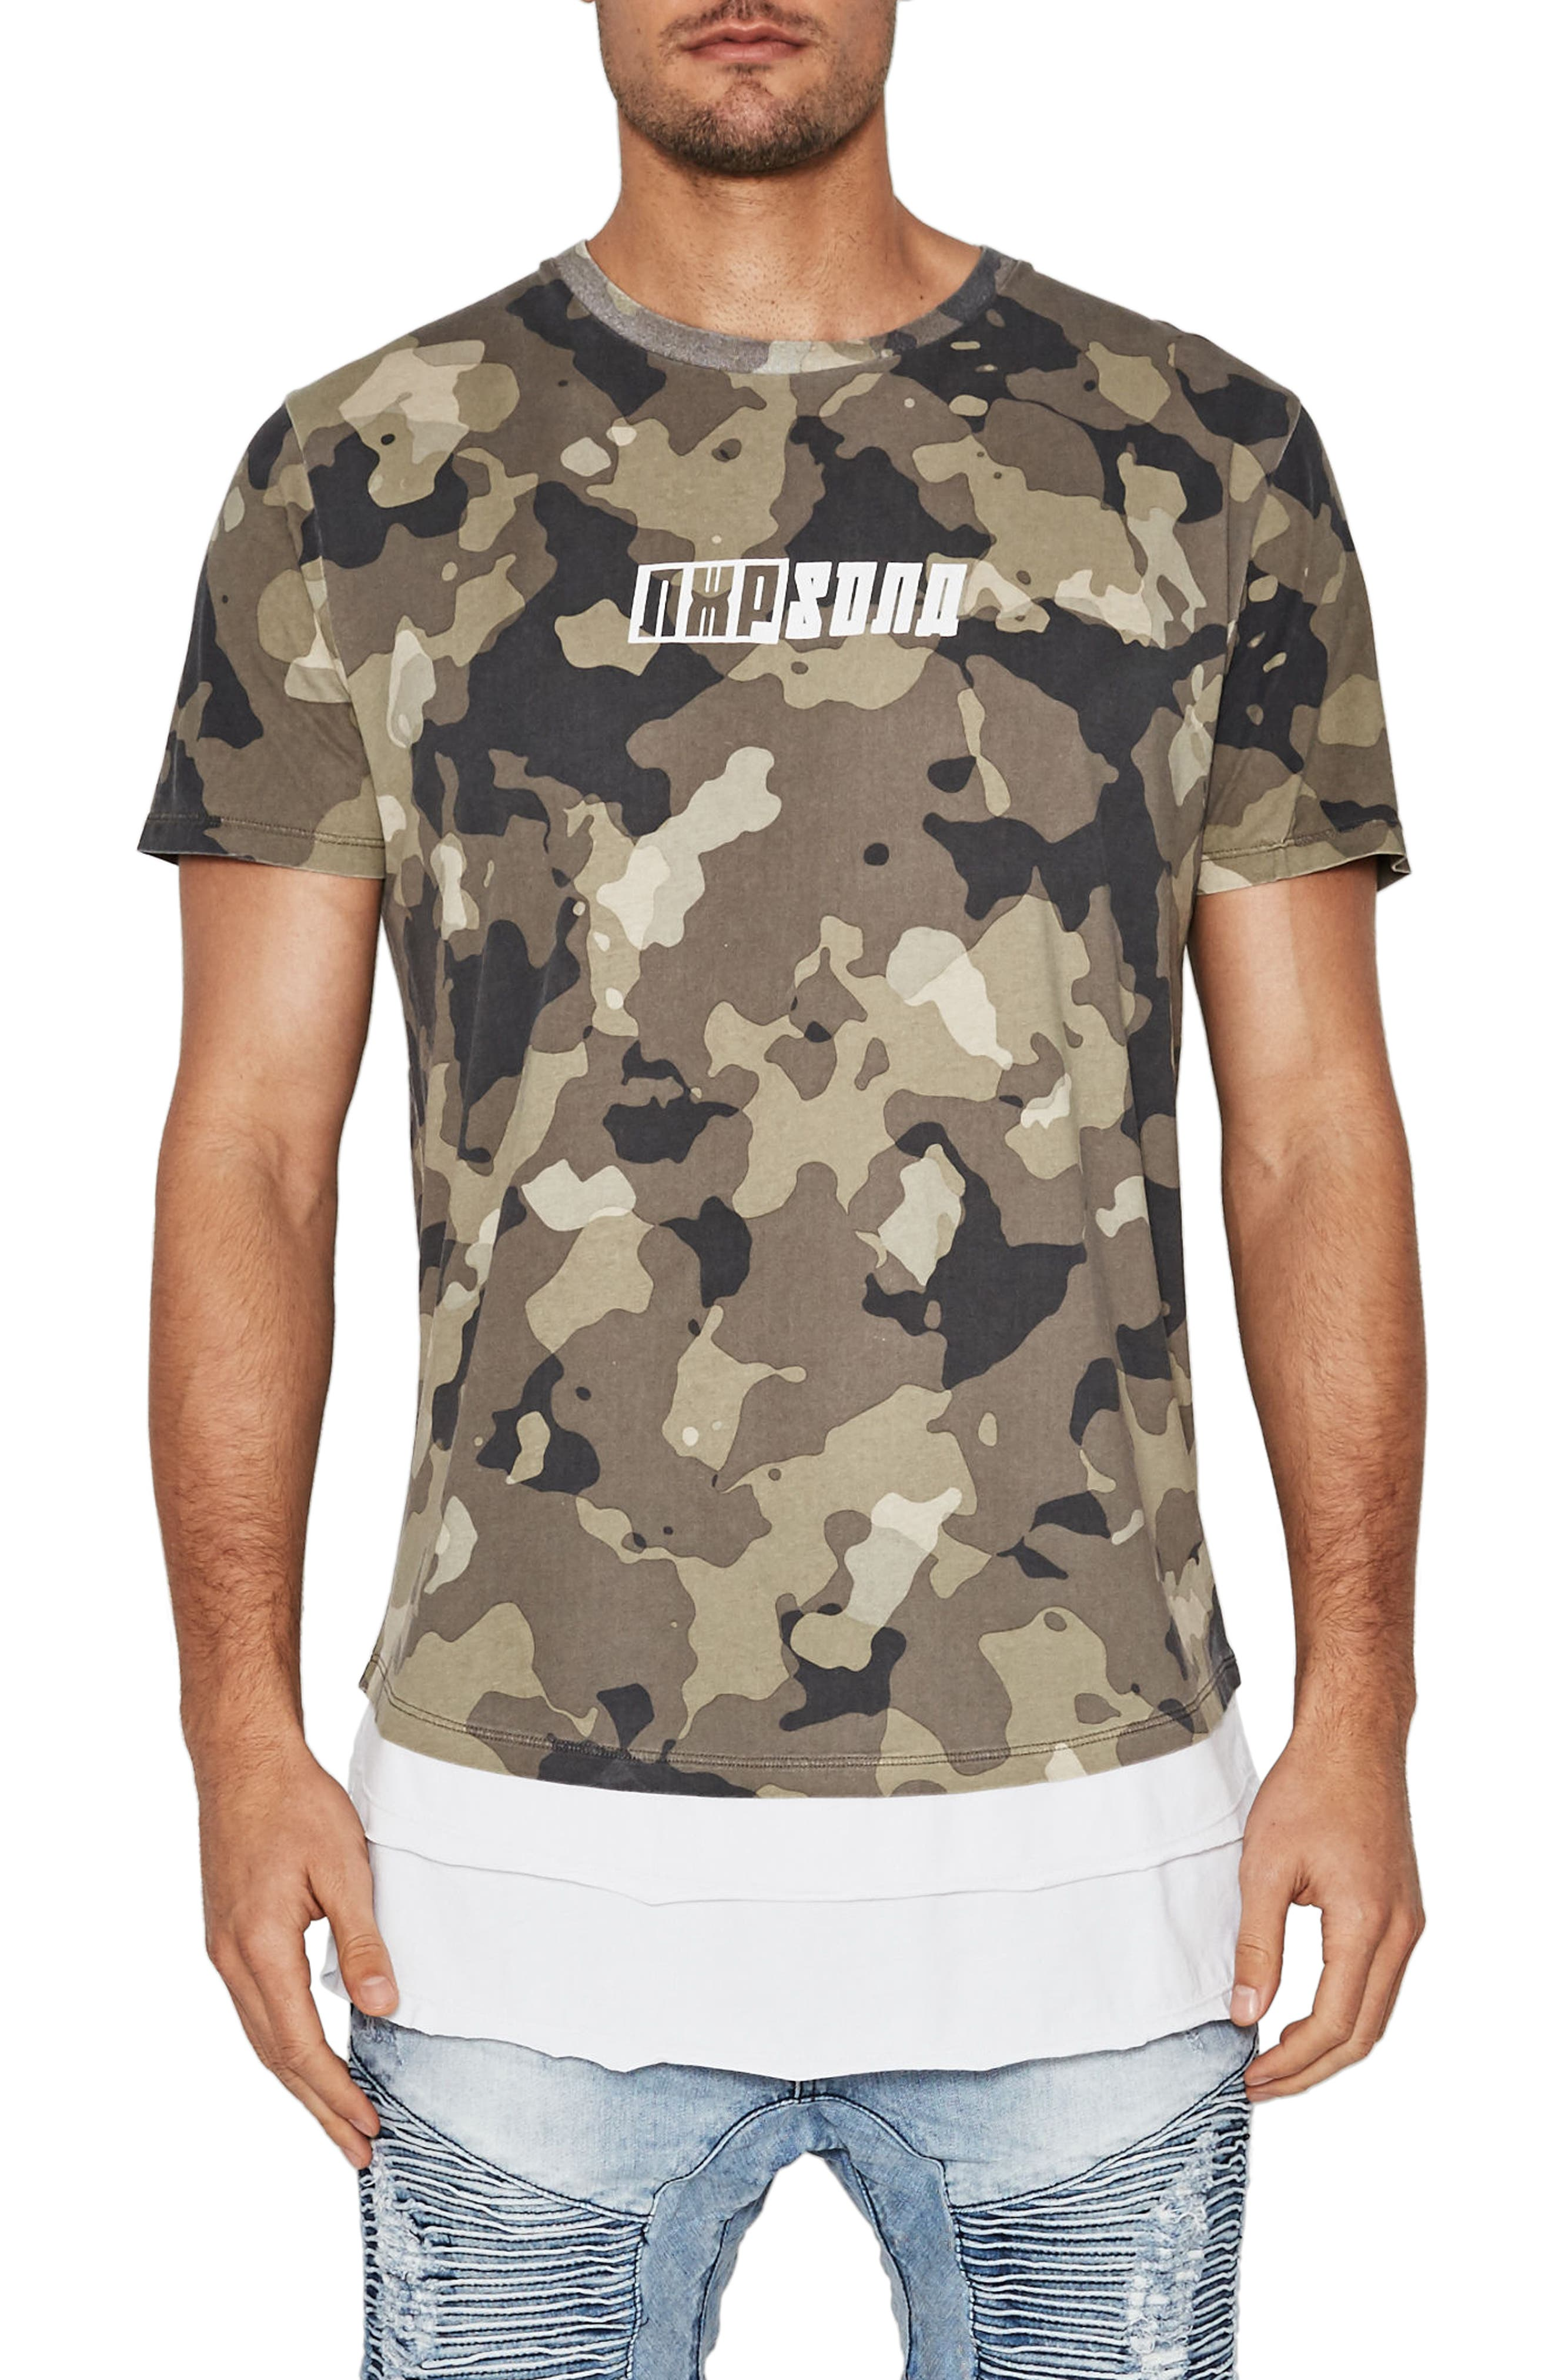 Specialized Camo T-Shirt,                             Main thumbnail 1, color,                             Camo